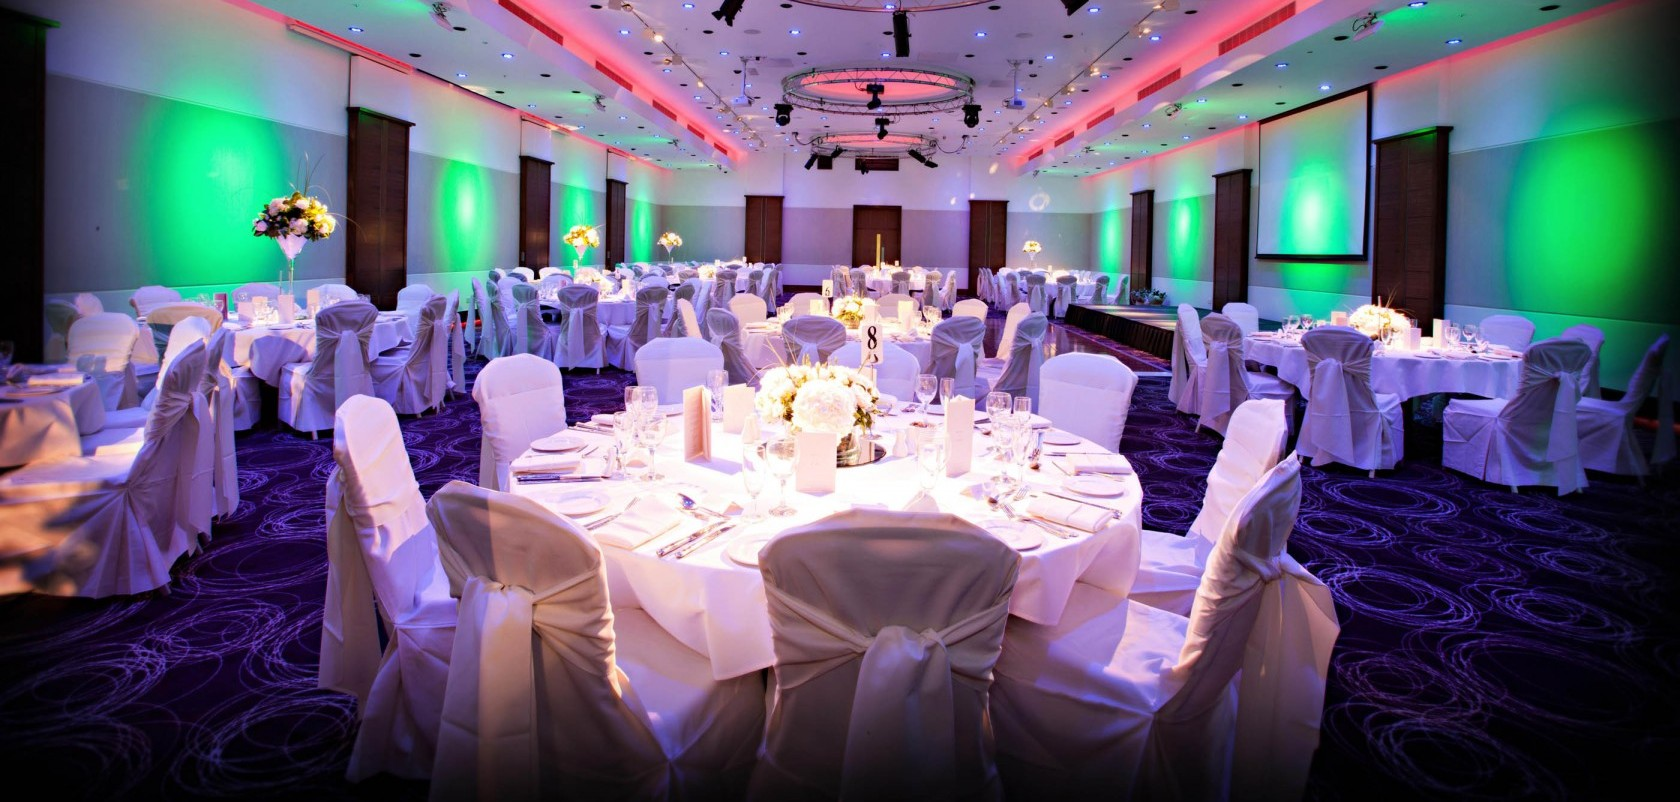 Event seating arrangements: What's the best for your event?